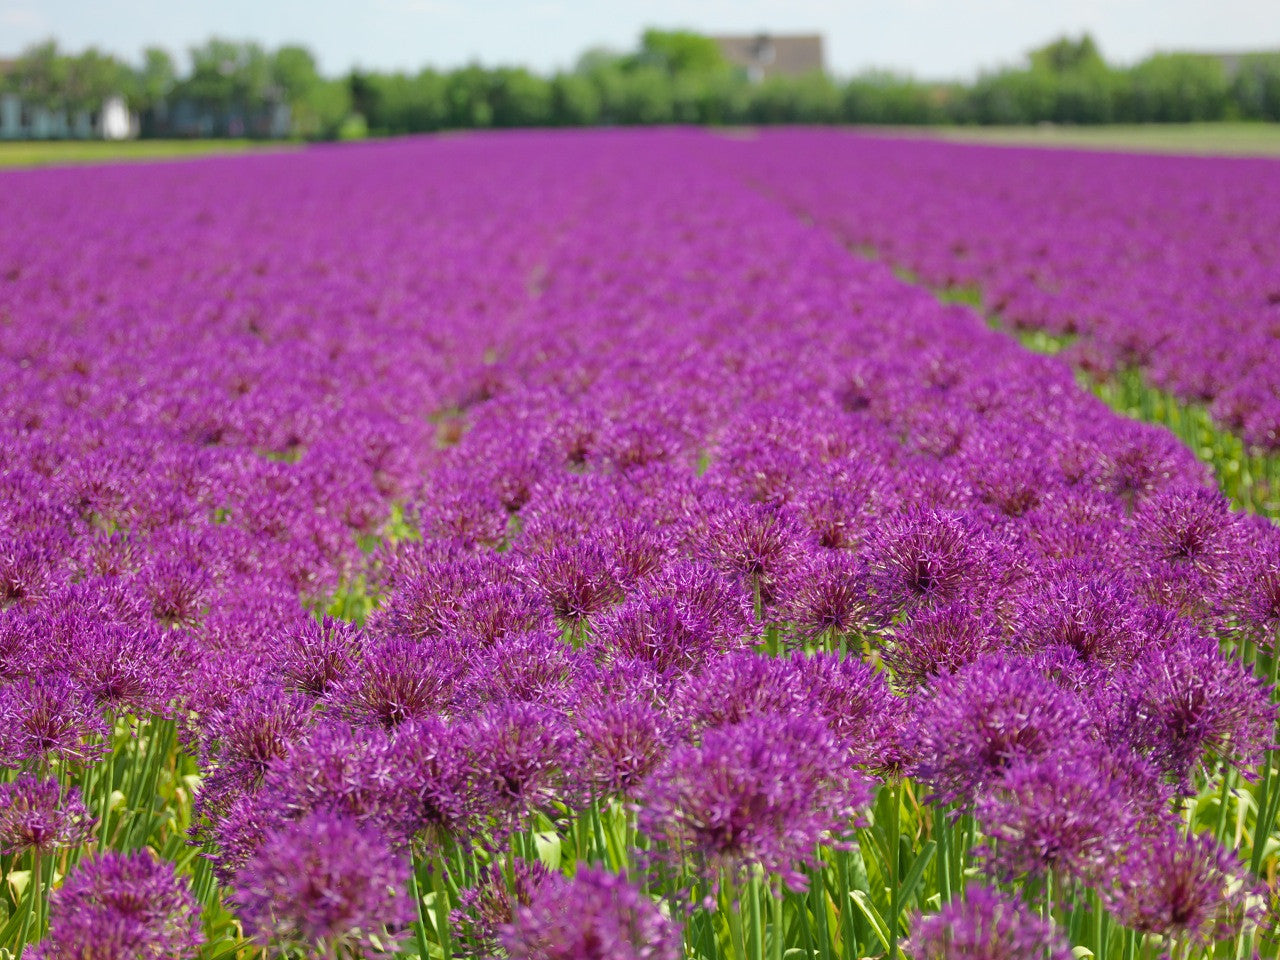 Allium bulb fields